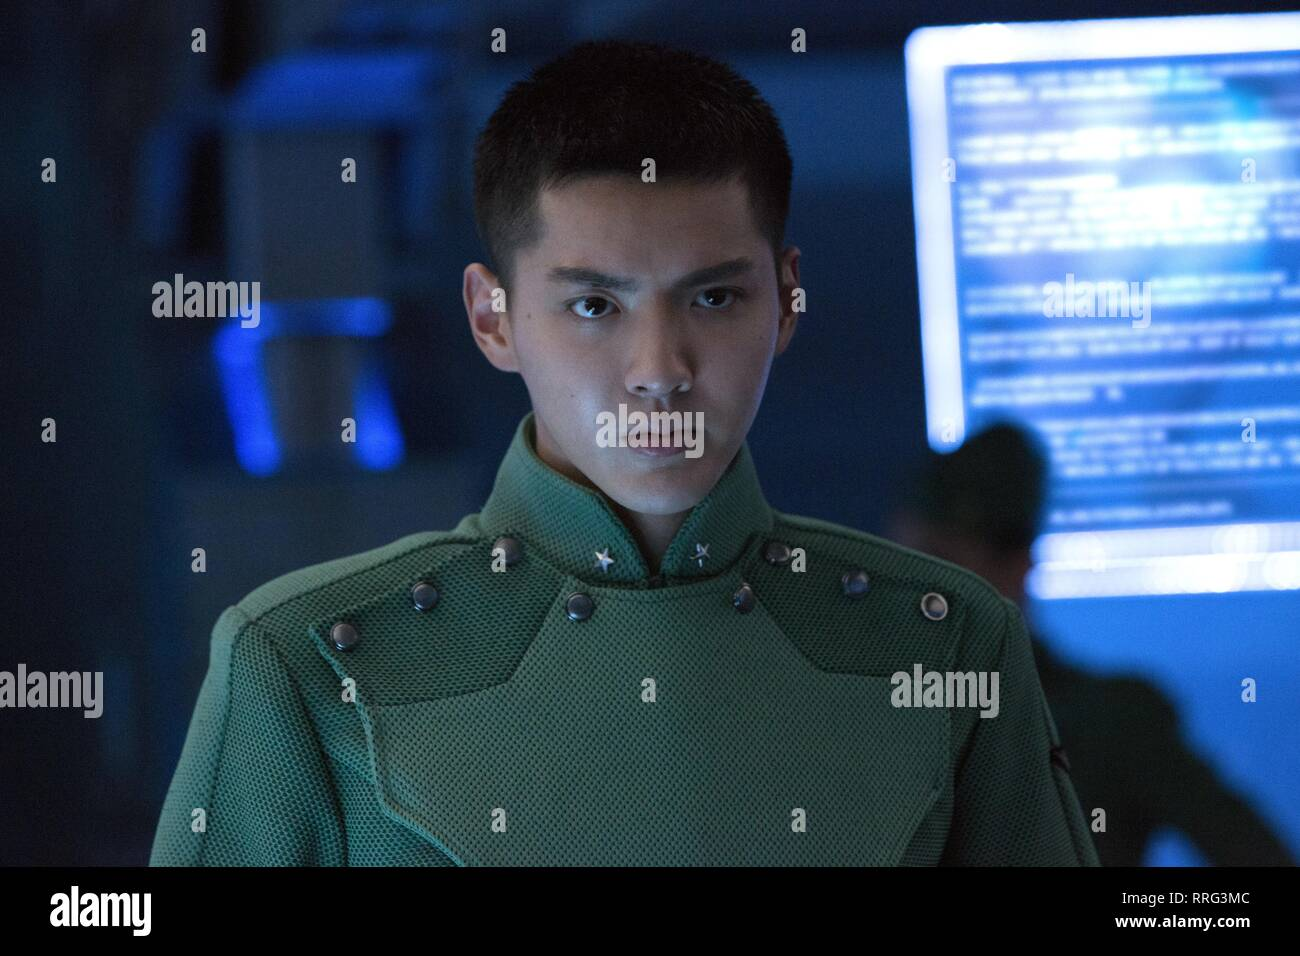 VALERIAN AND THE CITY OF A THOUSAND PLANETS, KRIS WU, 2017 - Stock Image